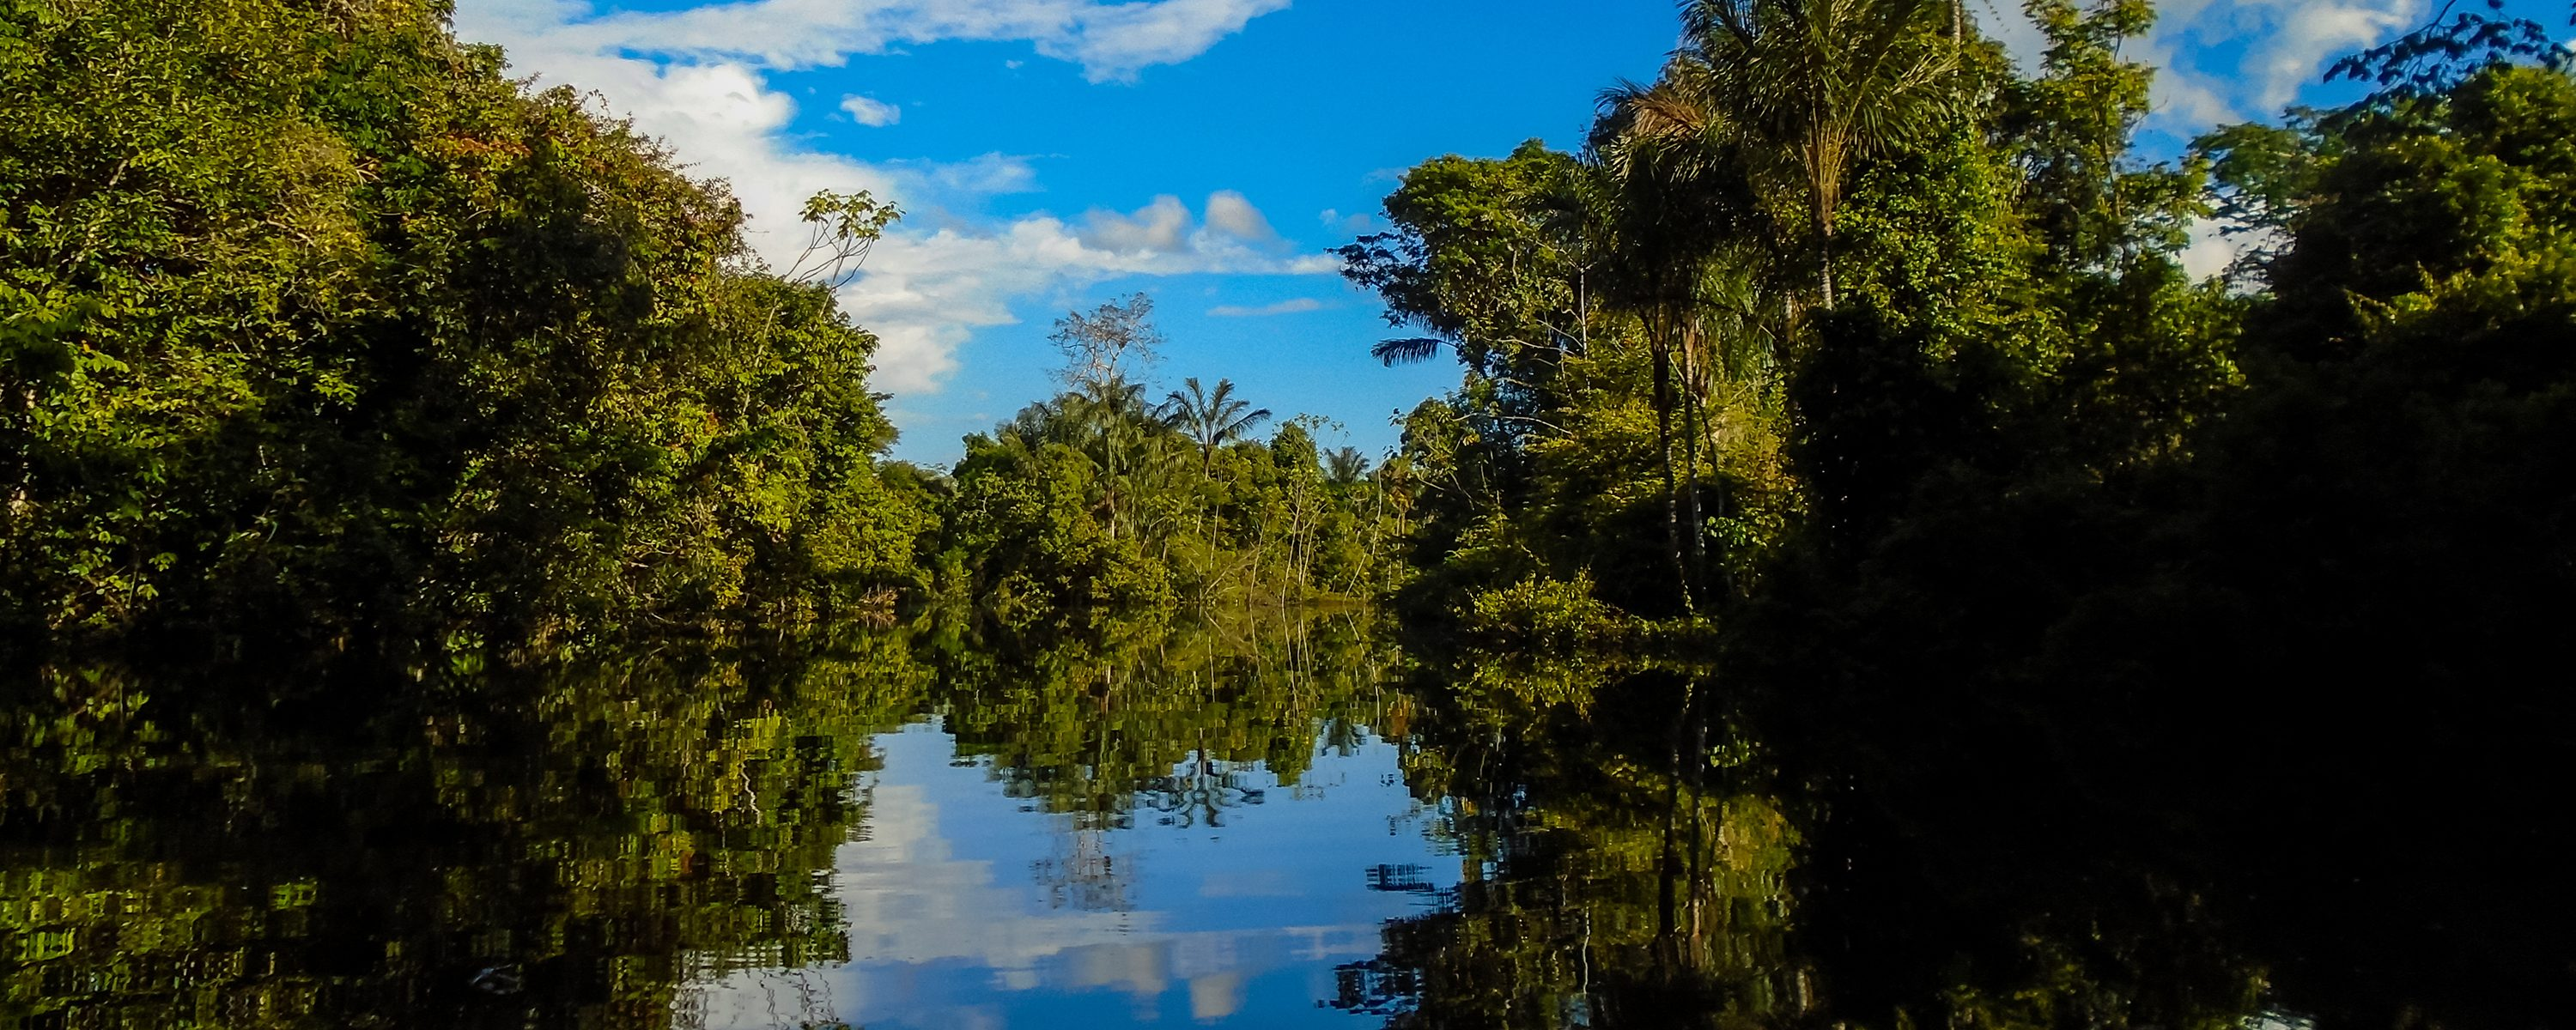 The trees reflect off the dark waters of the Rio Negro.